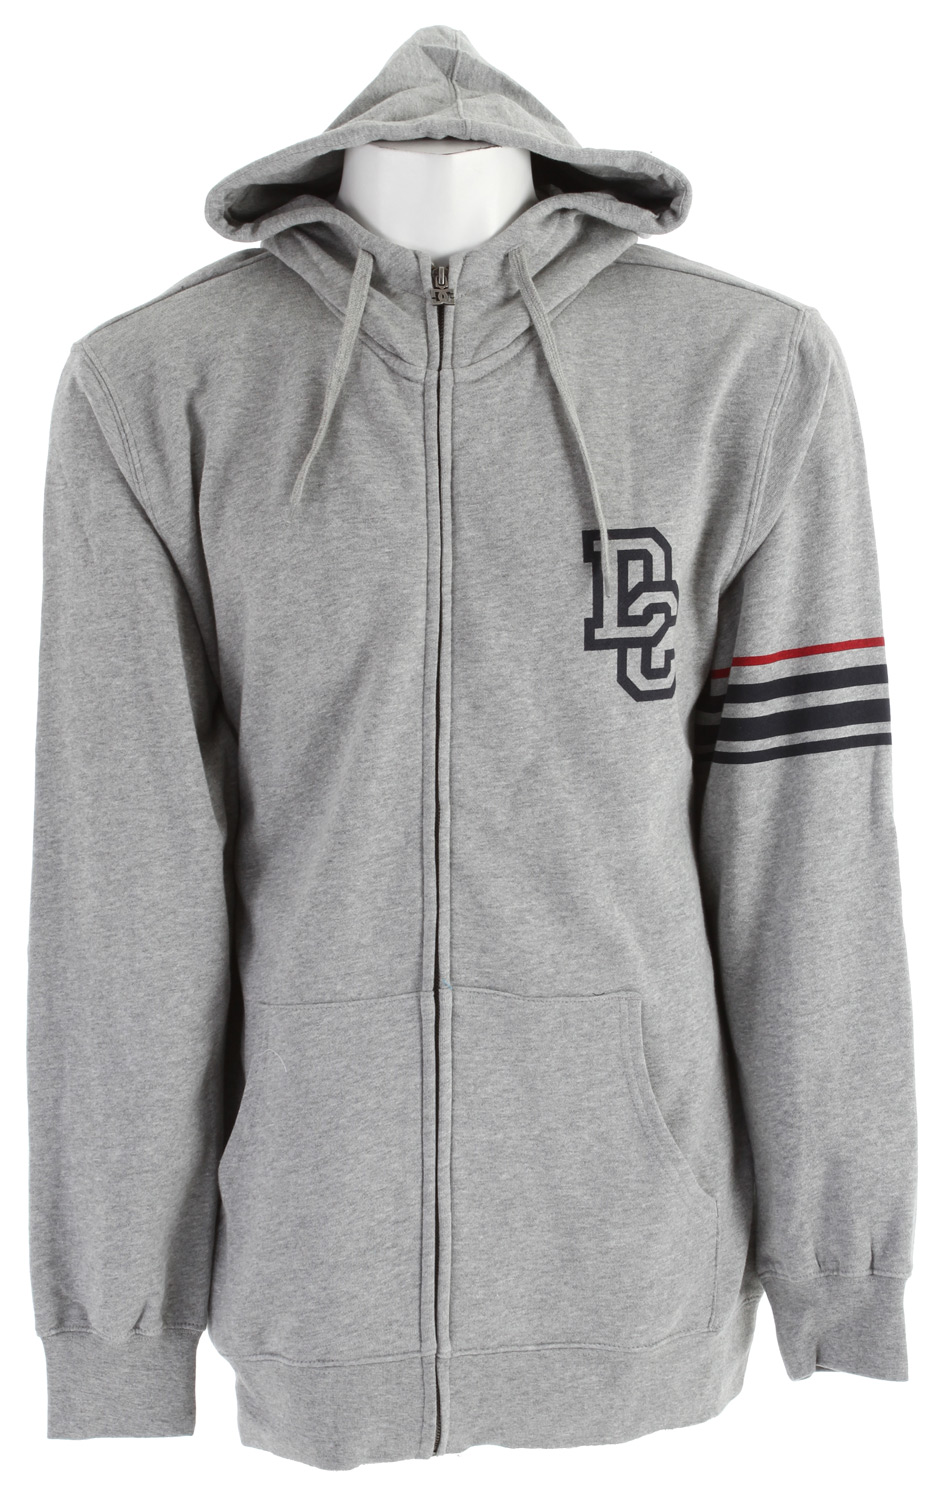 Skateboard Key Features of the DC Focus Zip Hoodie: Long fit fleece Full zip hood 80% cotton/20% polyester - $29.95